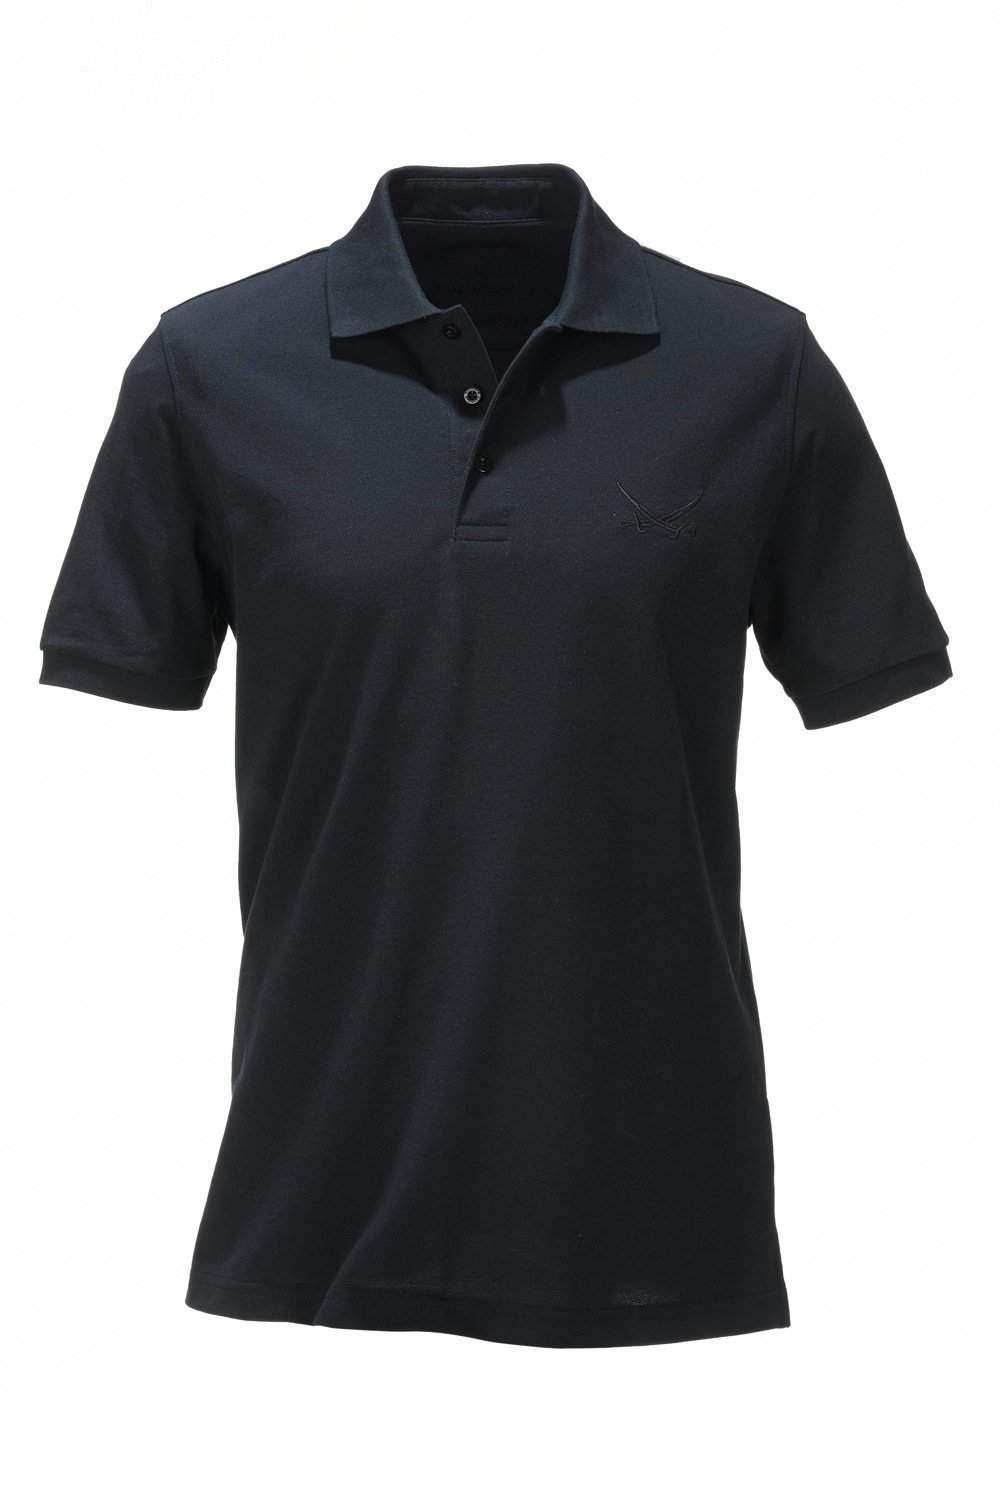 Herren Poloshirt Pima Cotton kurzarm LEISE, Black, Gr. XL